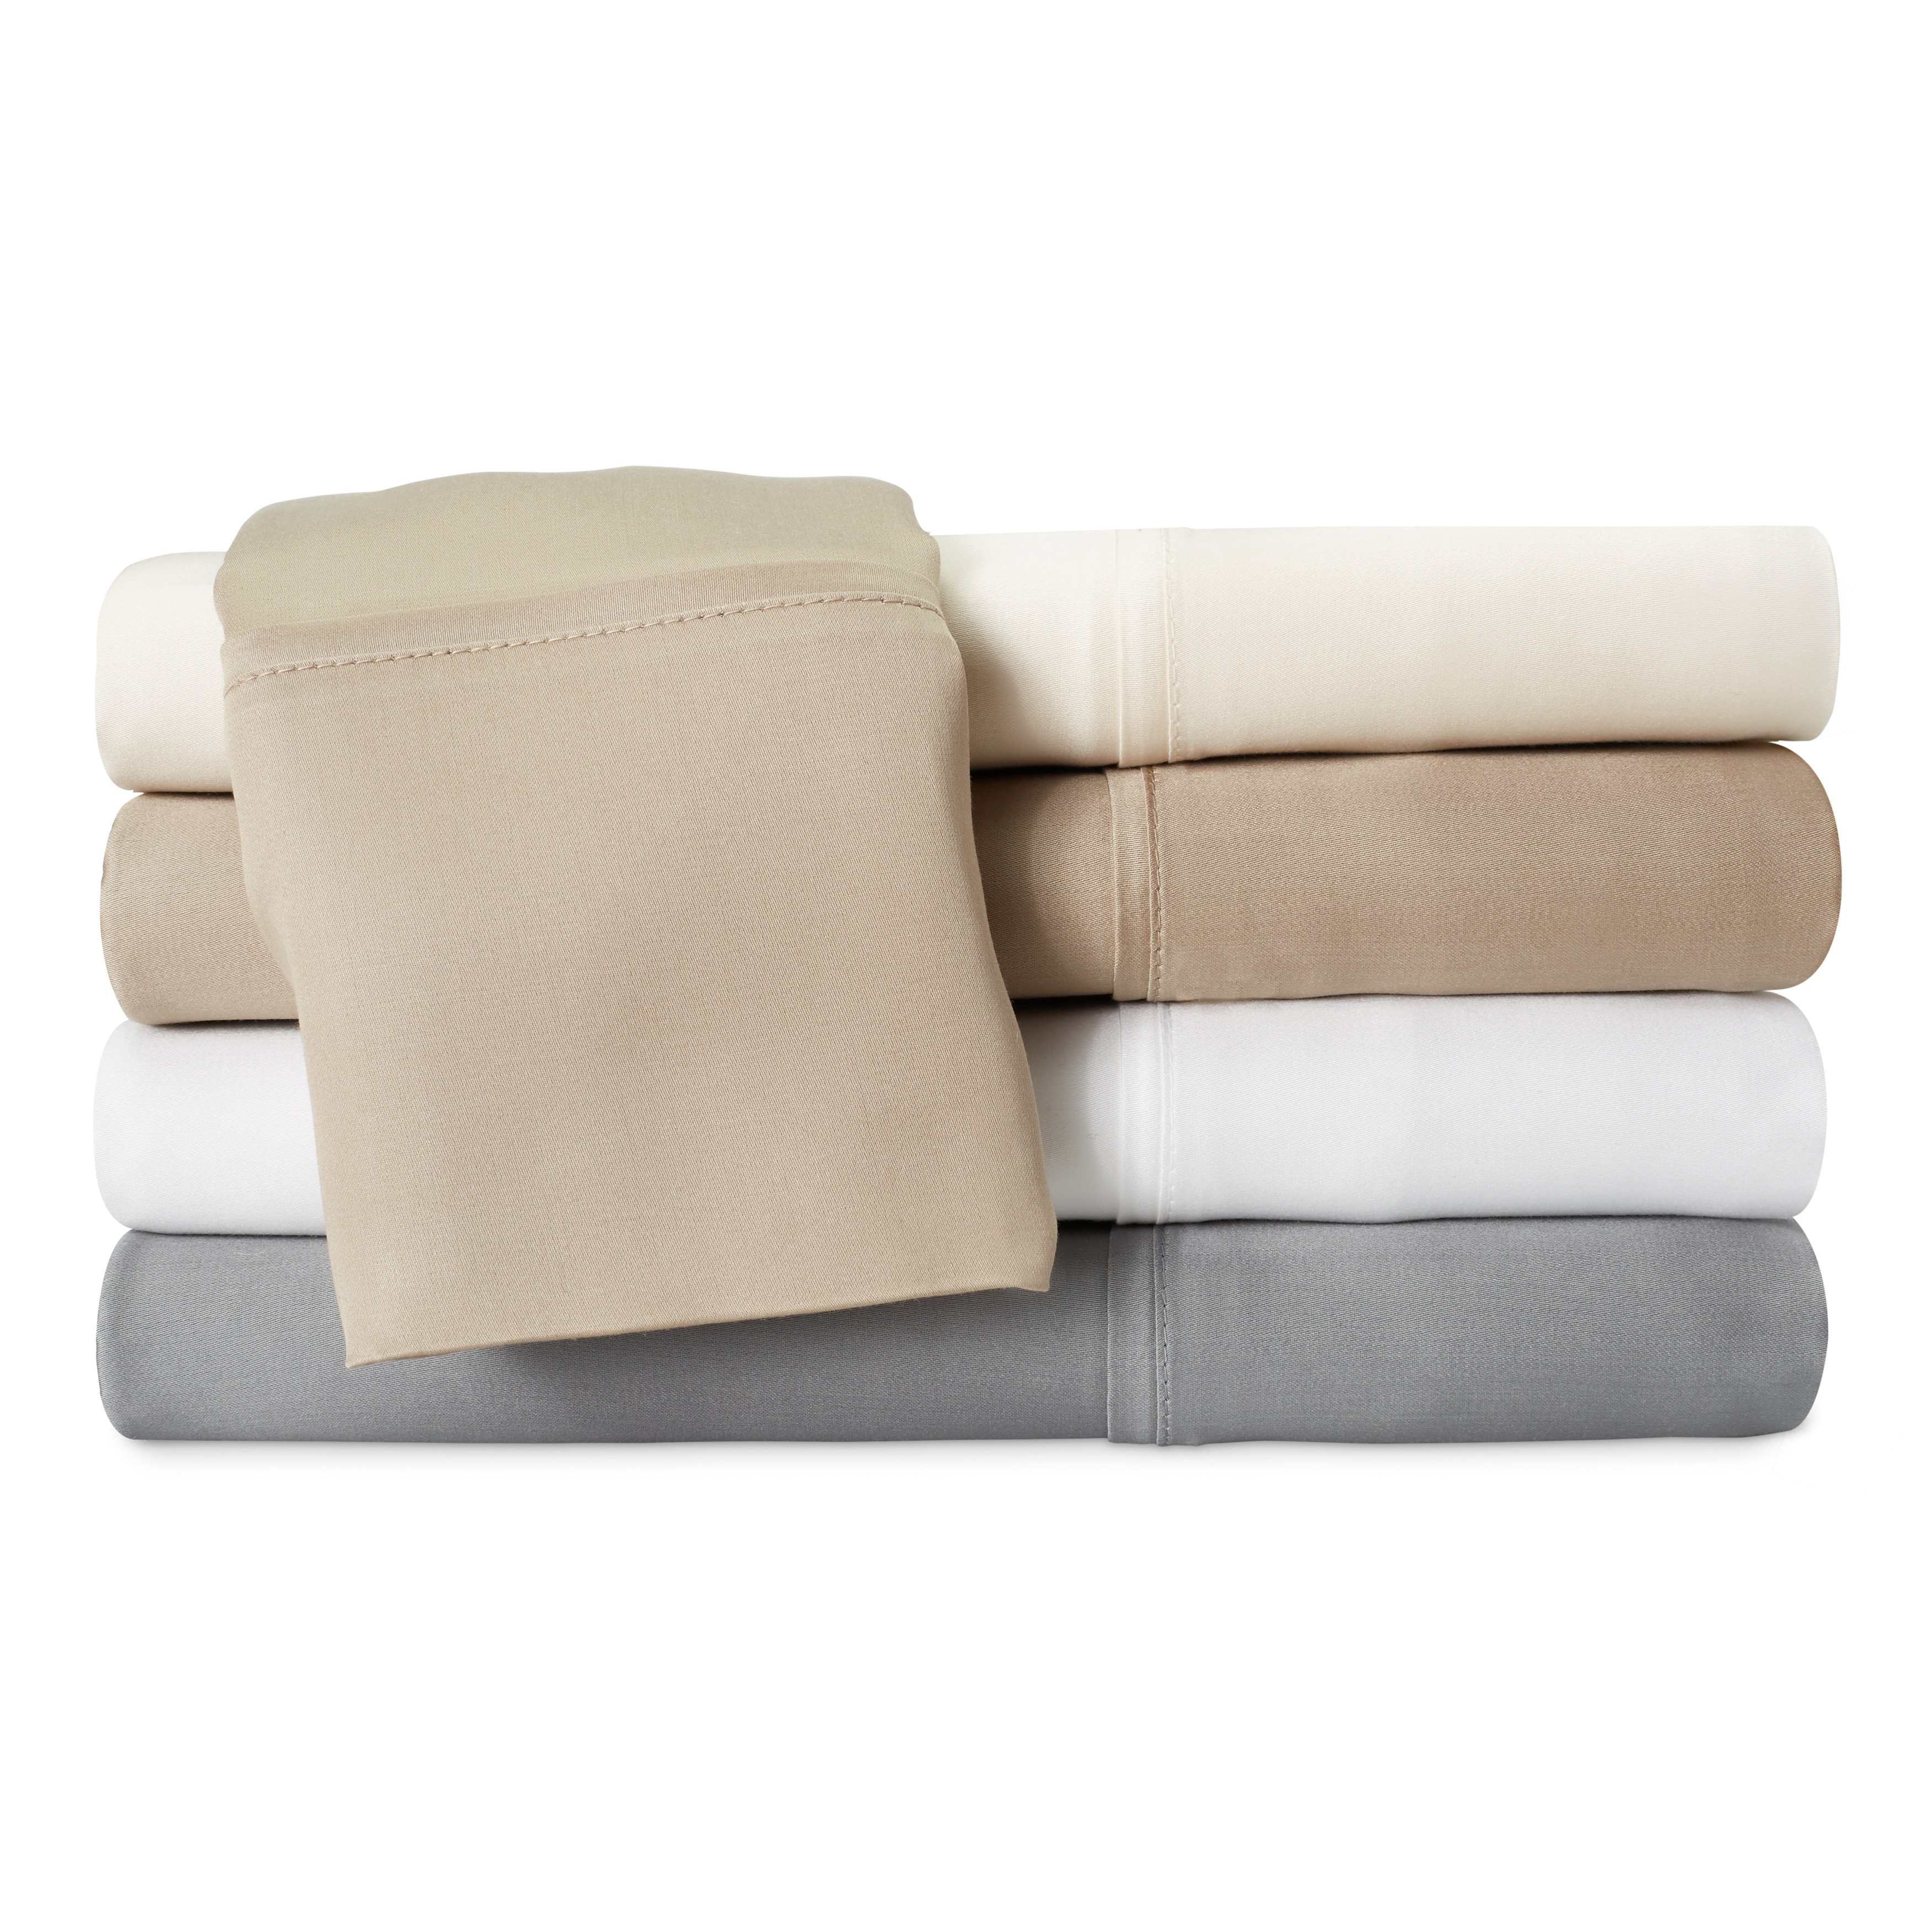 deep shipping free overstock bedding set for sheets today sleepers sleeper sheet pocket tencel hot product bath best lucid